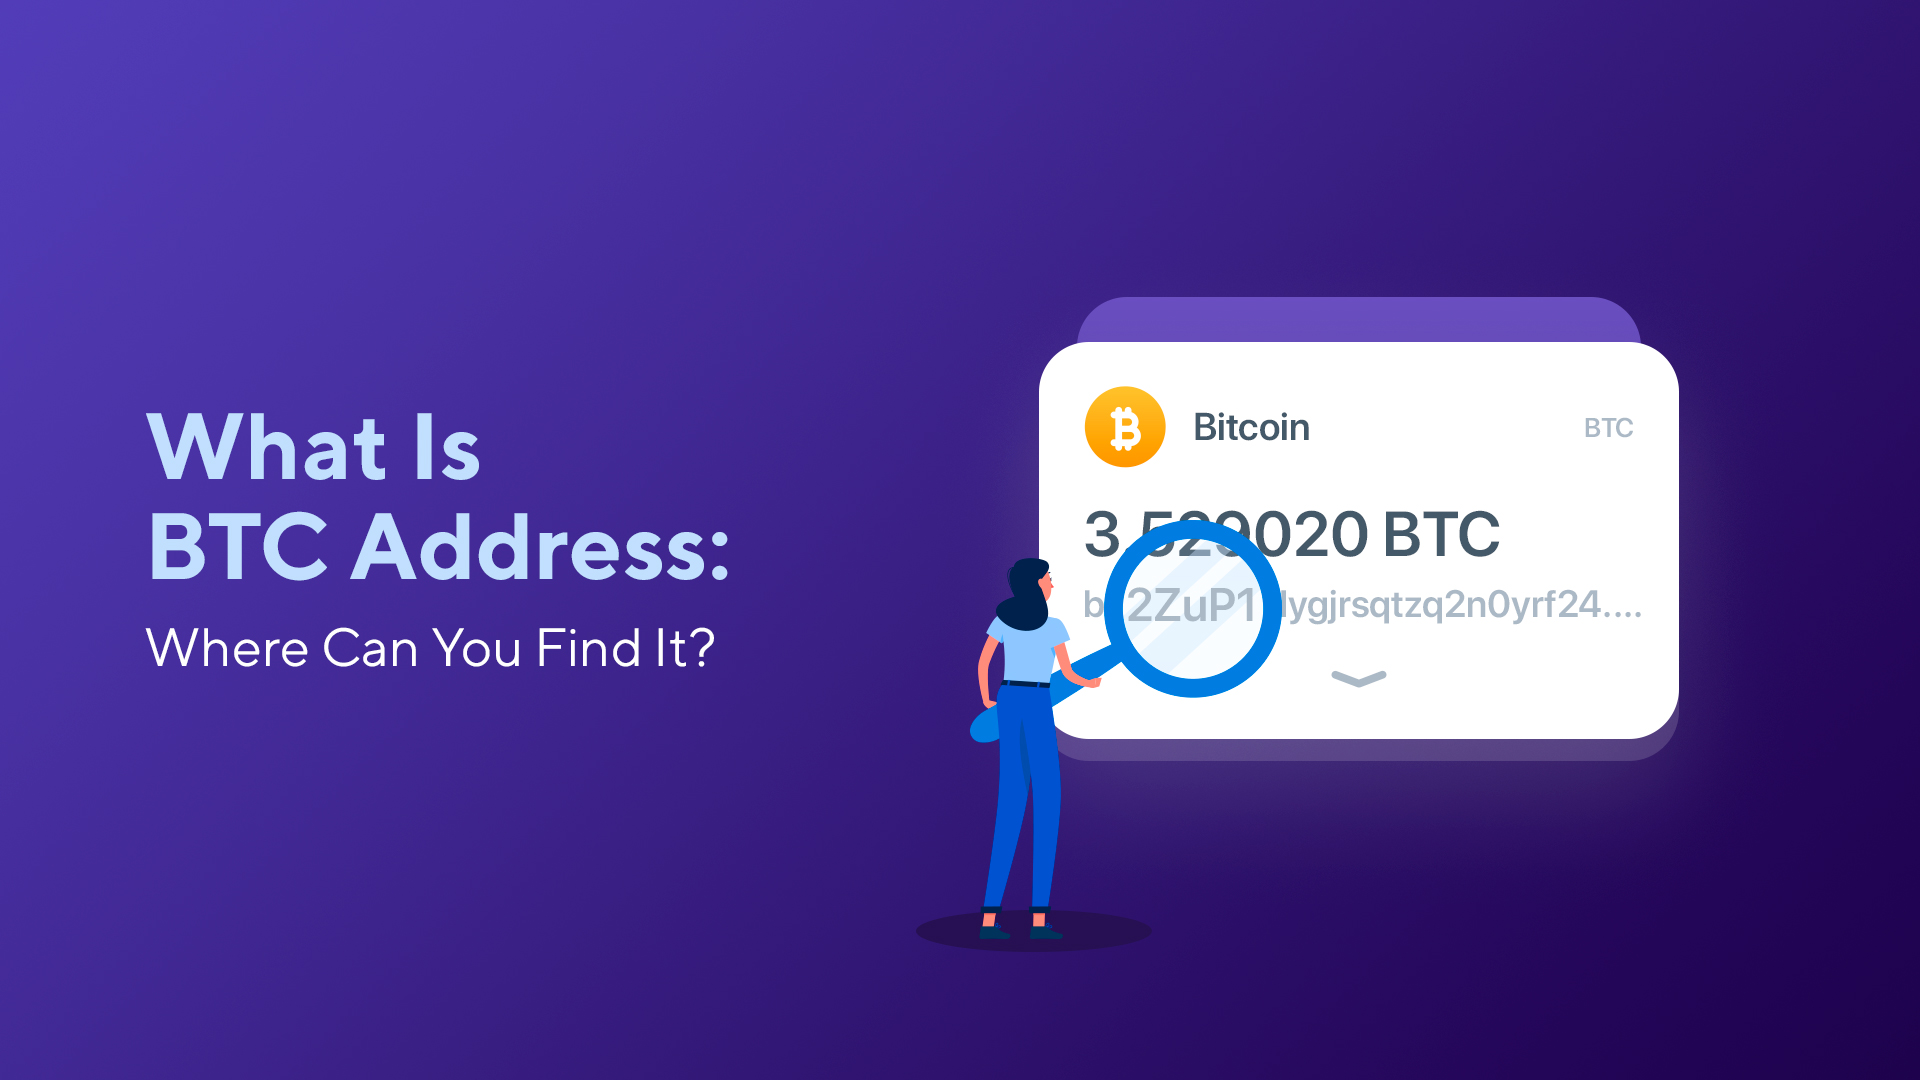 What Is My BTC Address: Where Can You Find It?